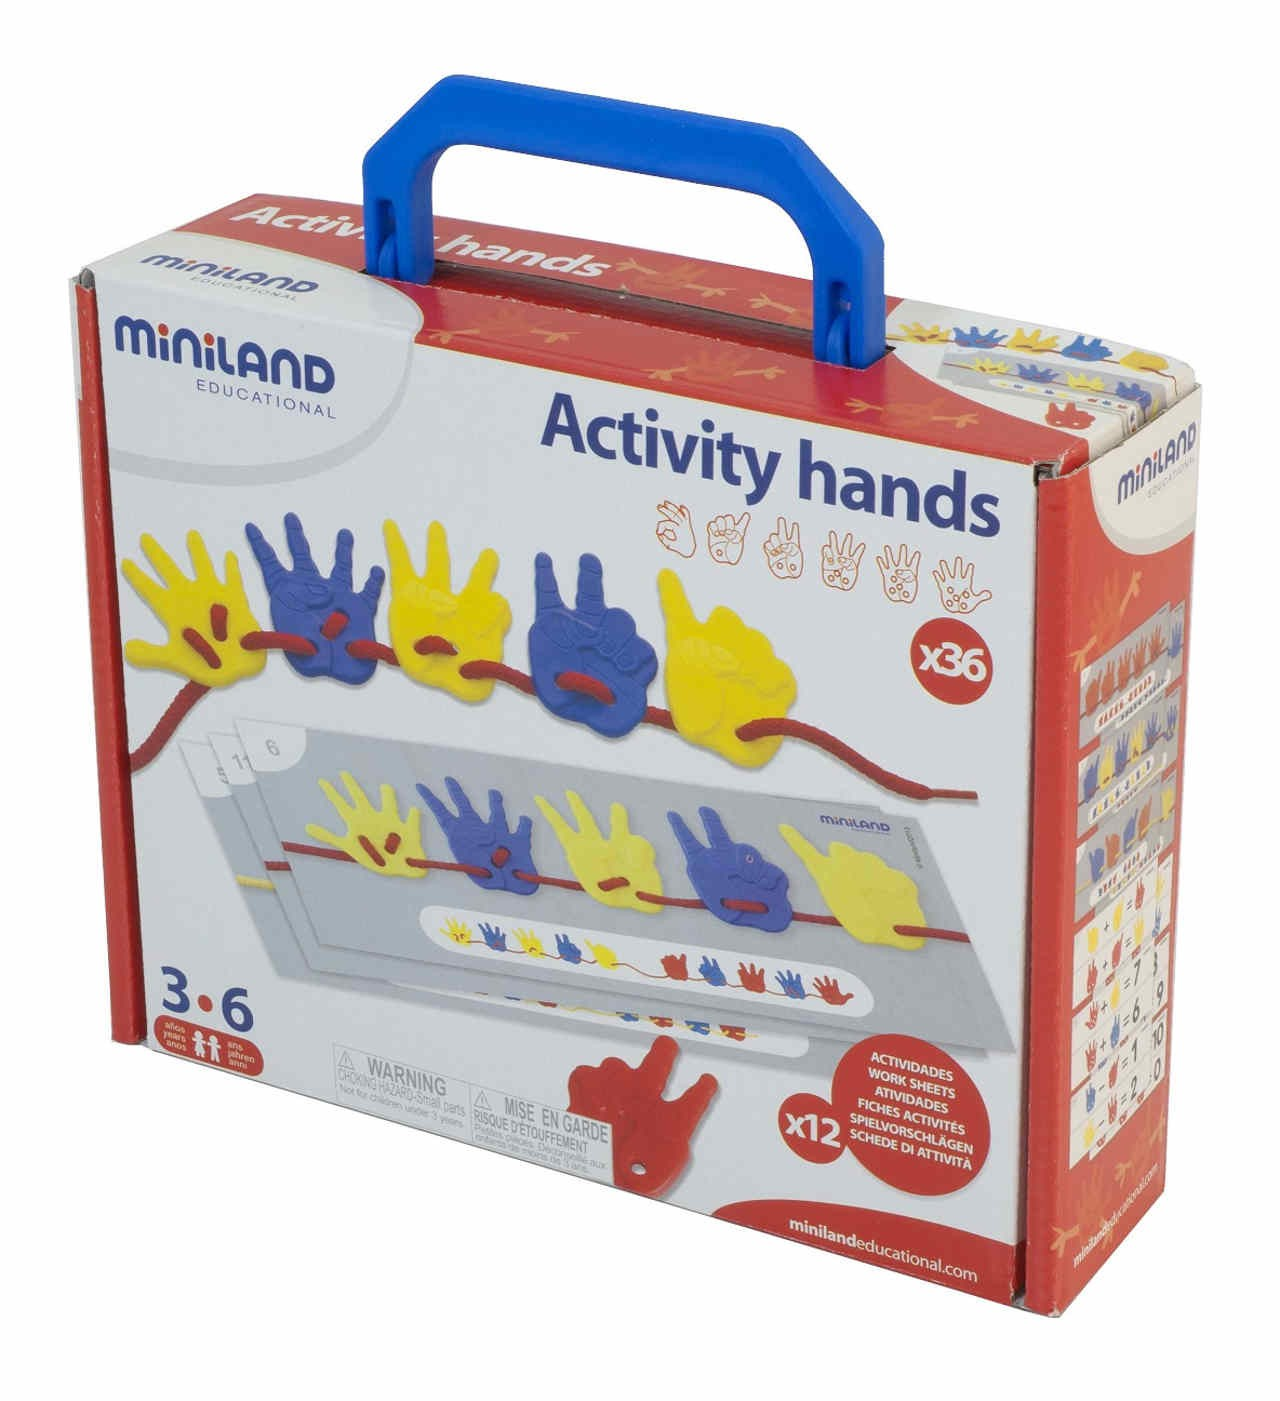 Activity Hands - Joc d'Enfilar